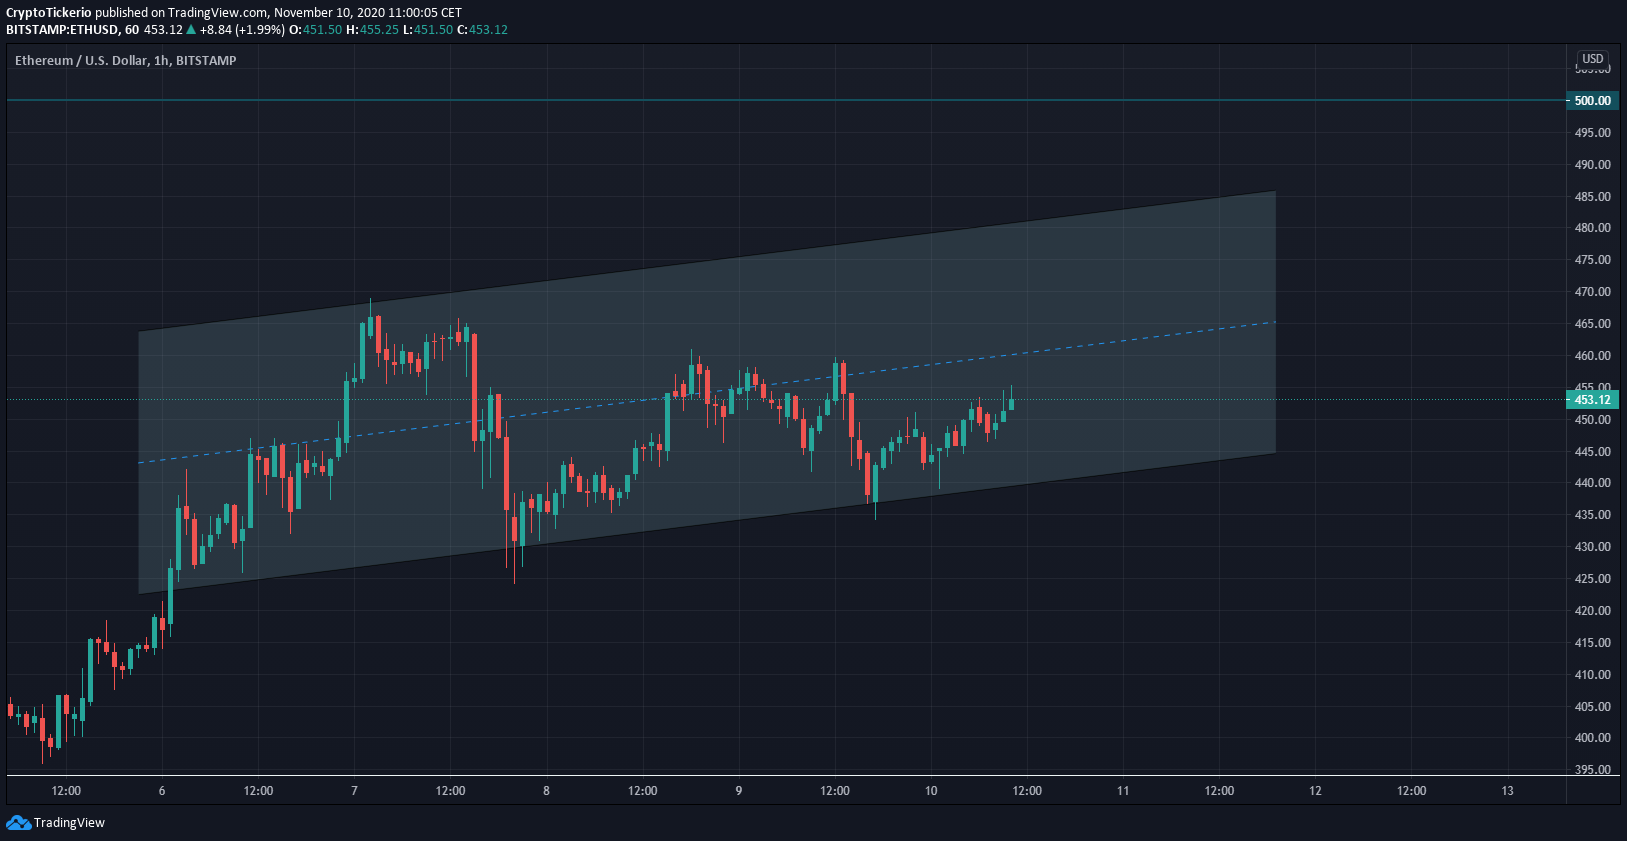 ETH/USD 1 hour chart – Short term uptrend channel